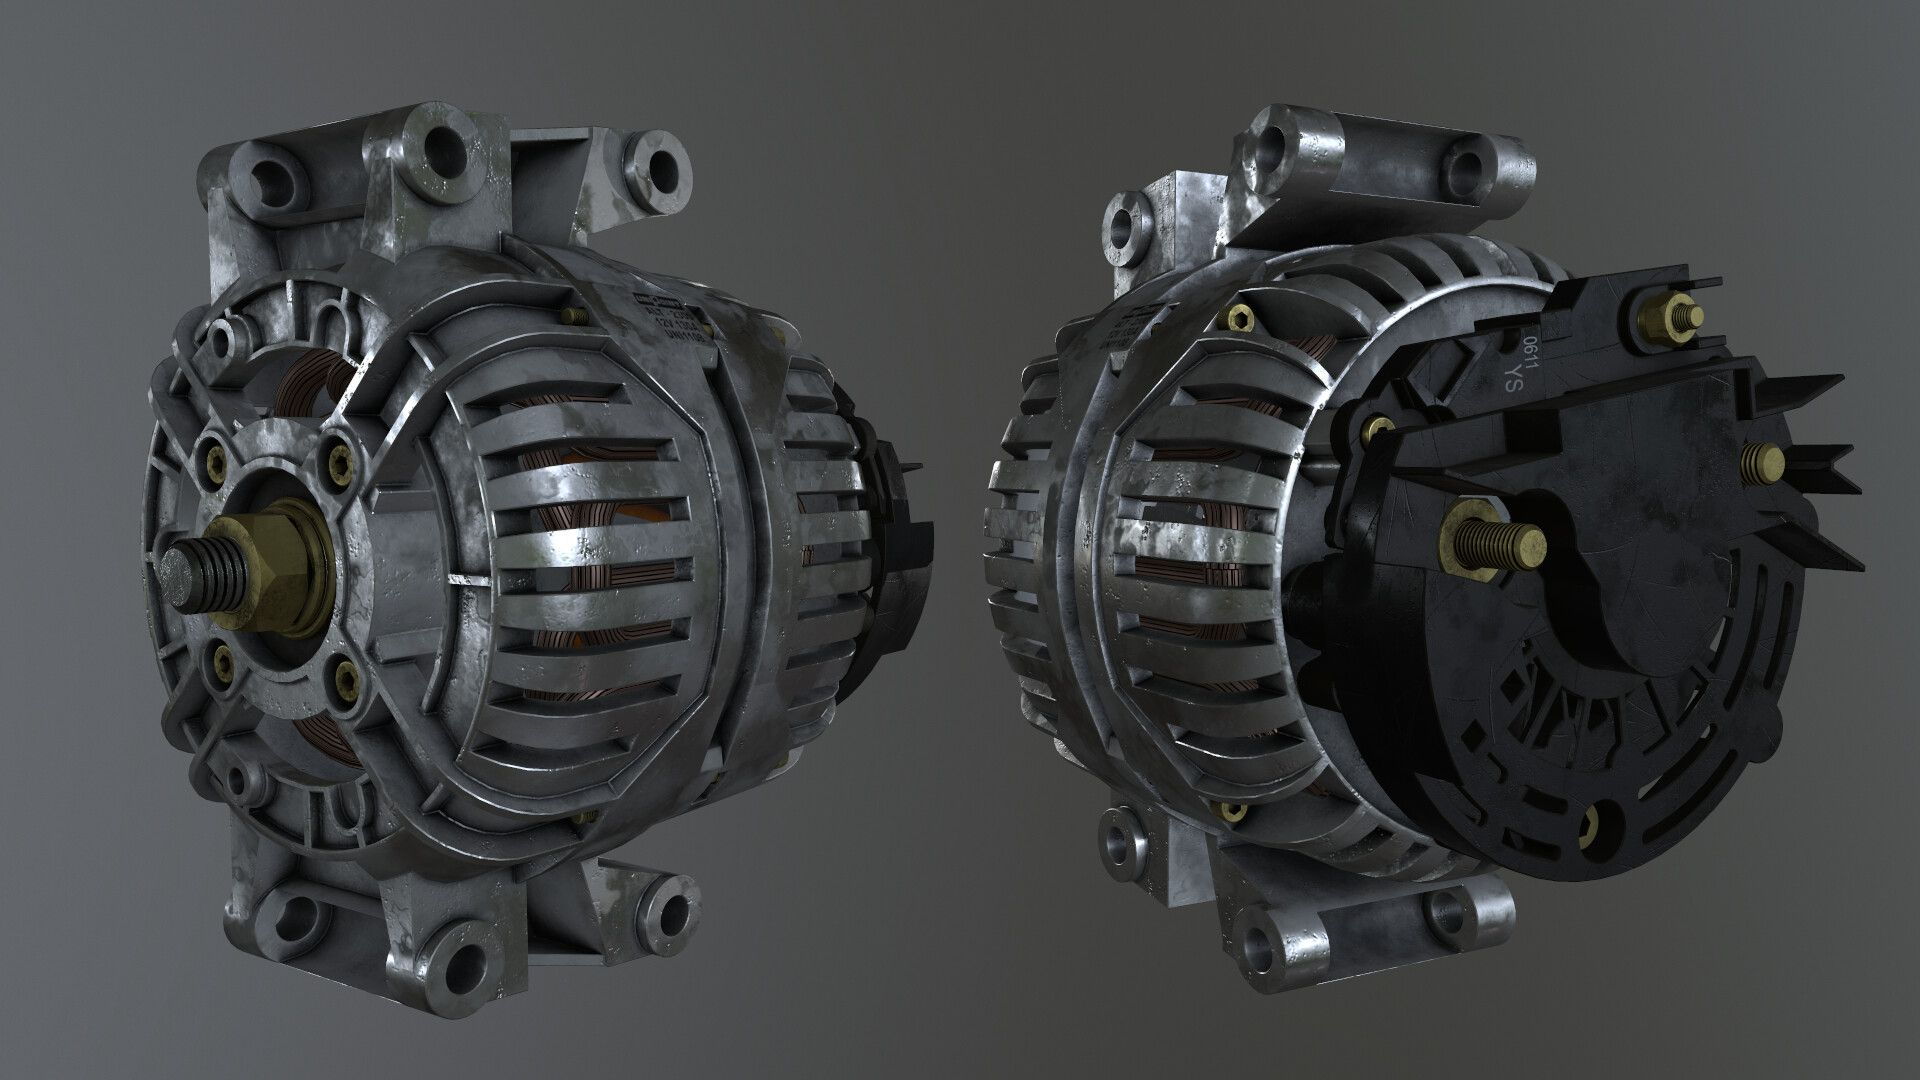 Alternator By Aleksey Varachevcar Alternator Mesh To Familiarize Myself Better With Boolean Modeling Workflow Alternator Car Alternator Industrial Design